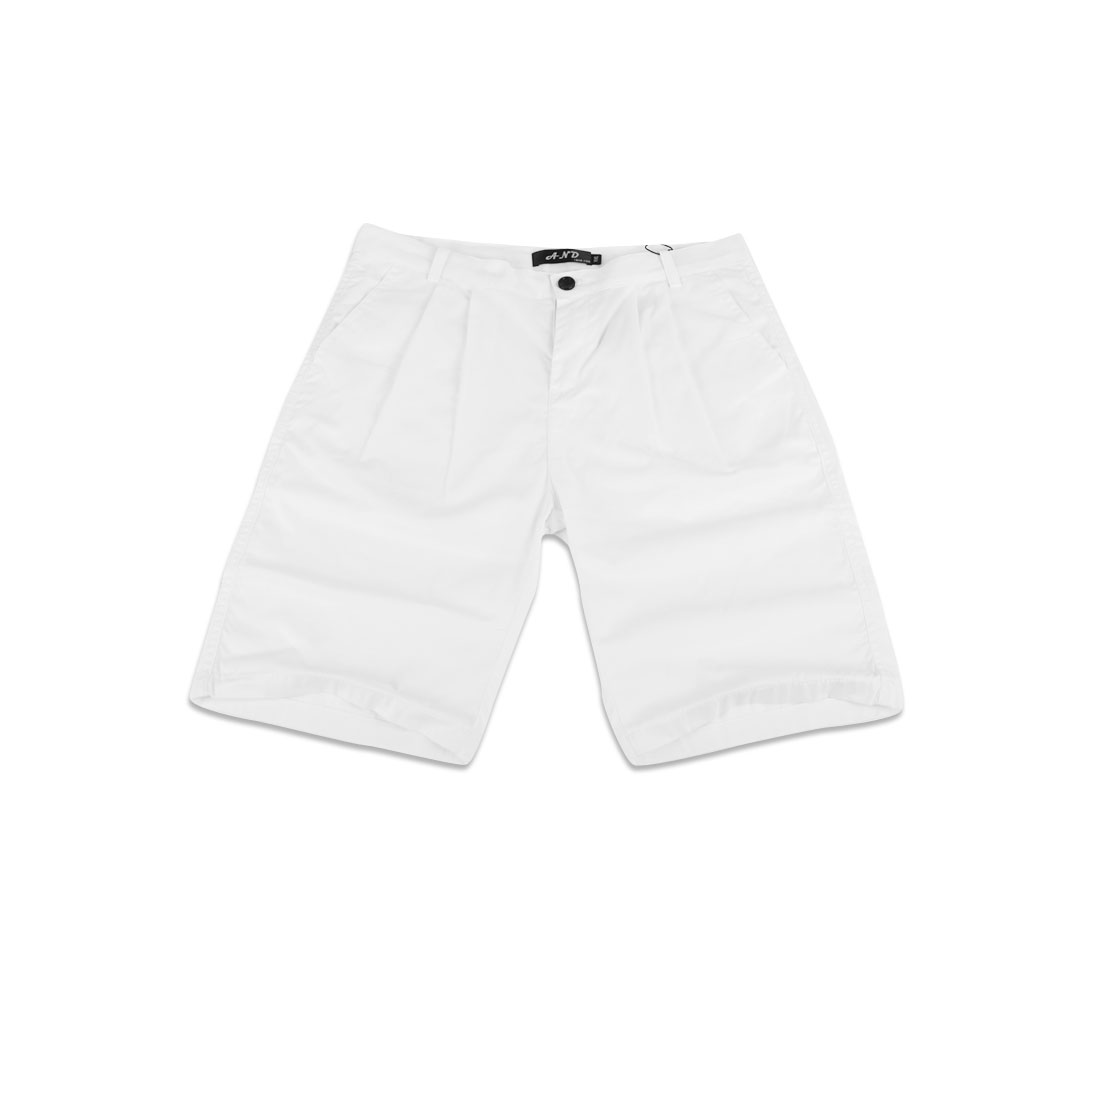 Men Zipper Fly Belted Loop Hip Pockets Casual Shorts White W32